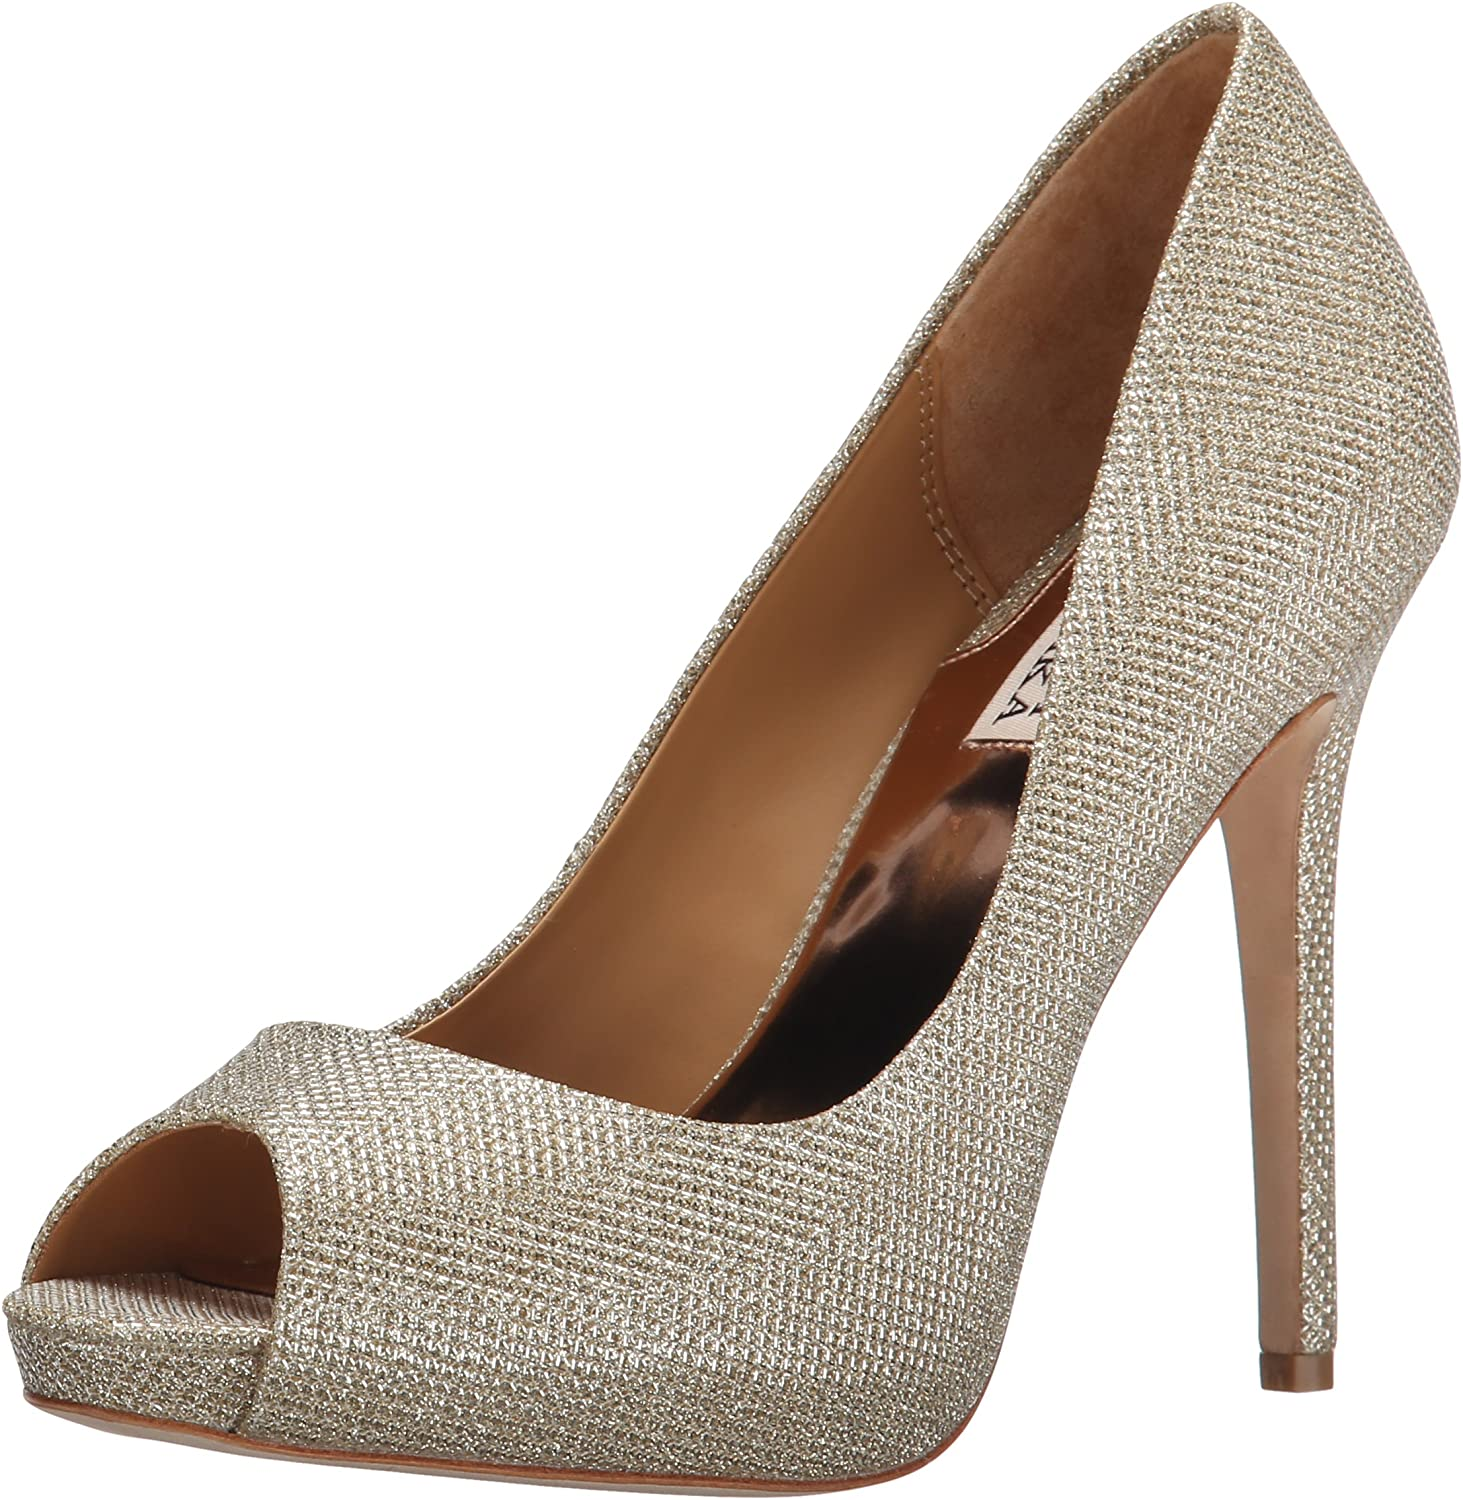 Badgley Mischka Women's Pondepink Platform Pump